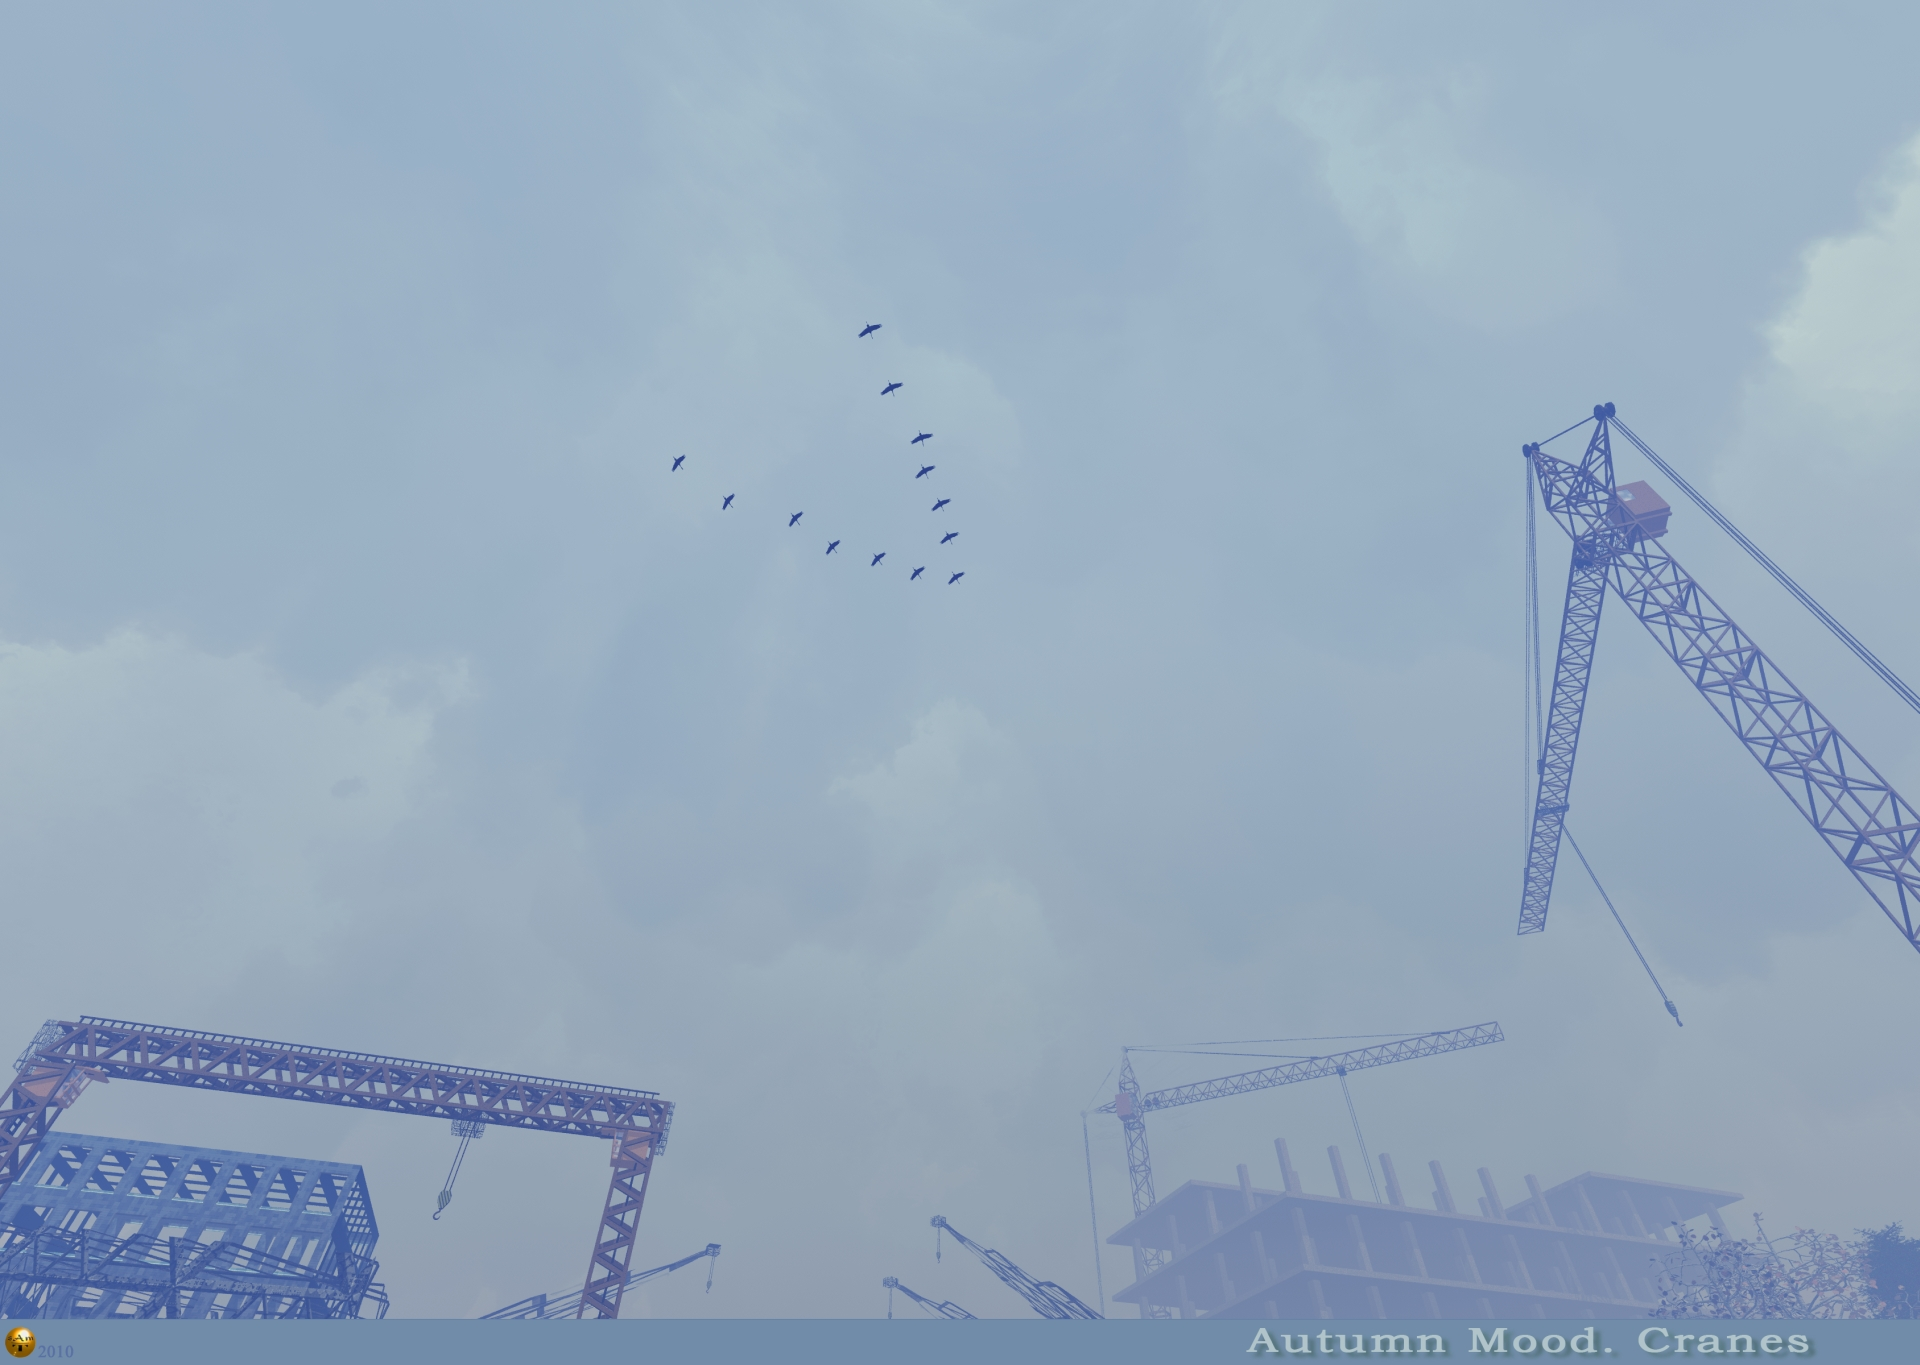 Autumn Mood. Cranes.